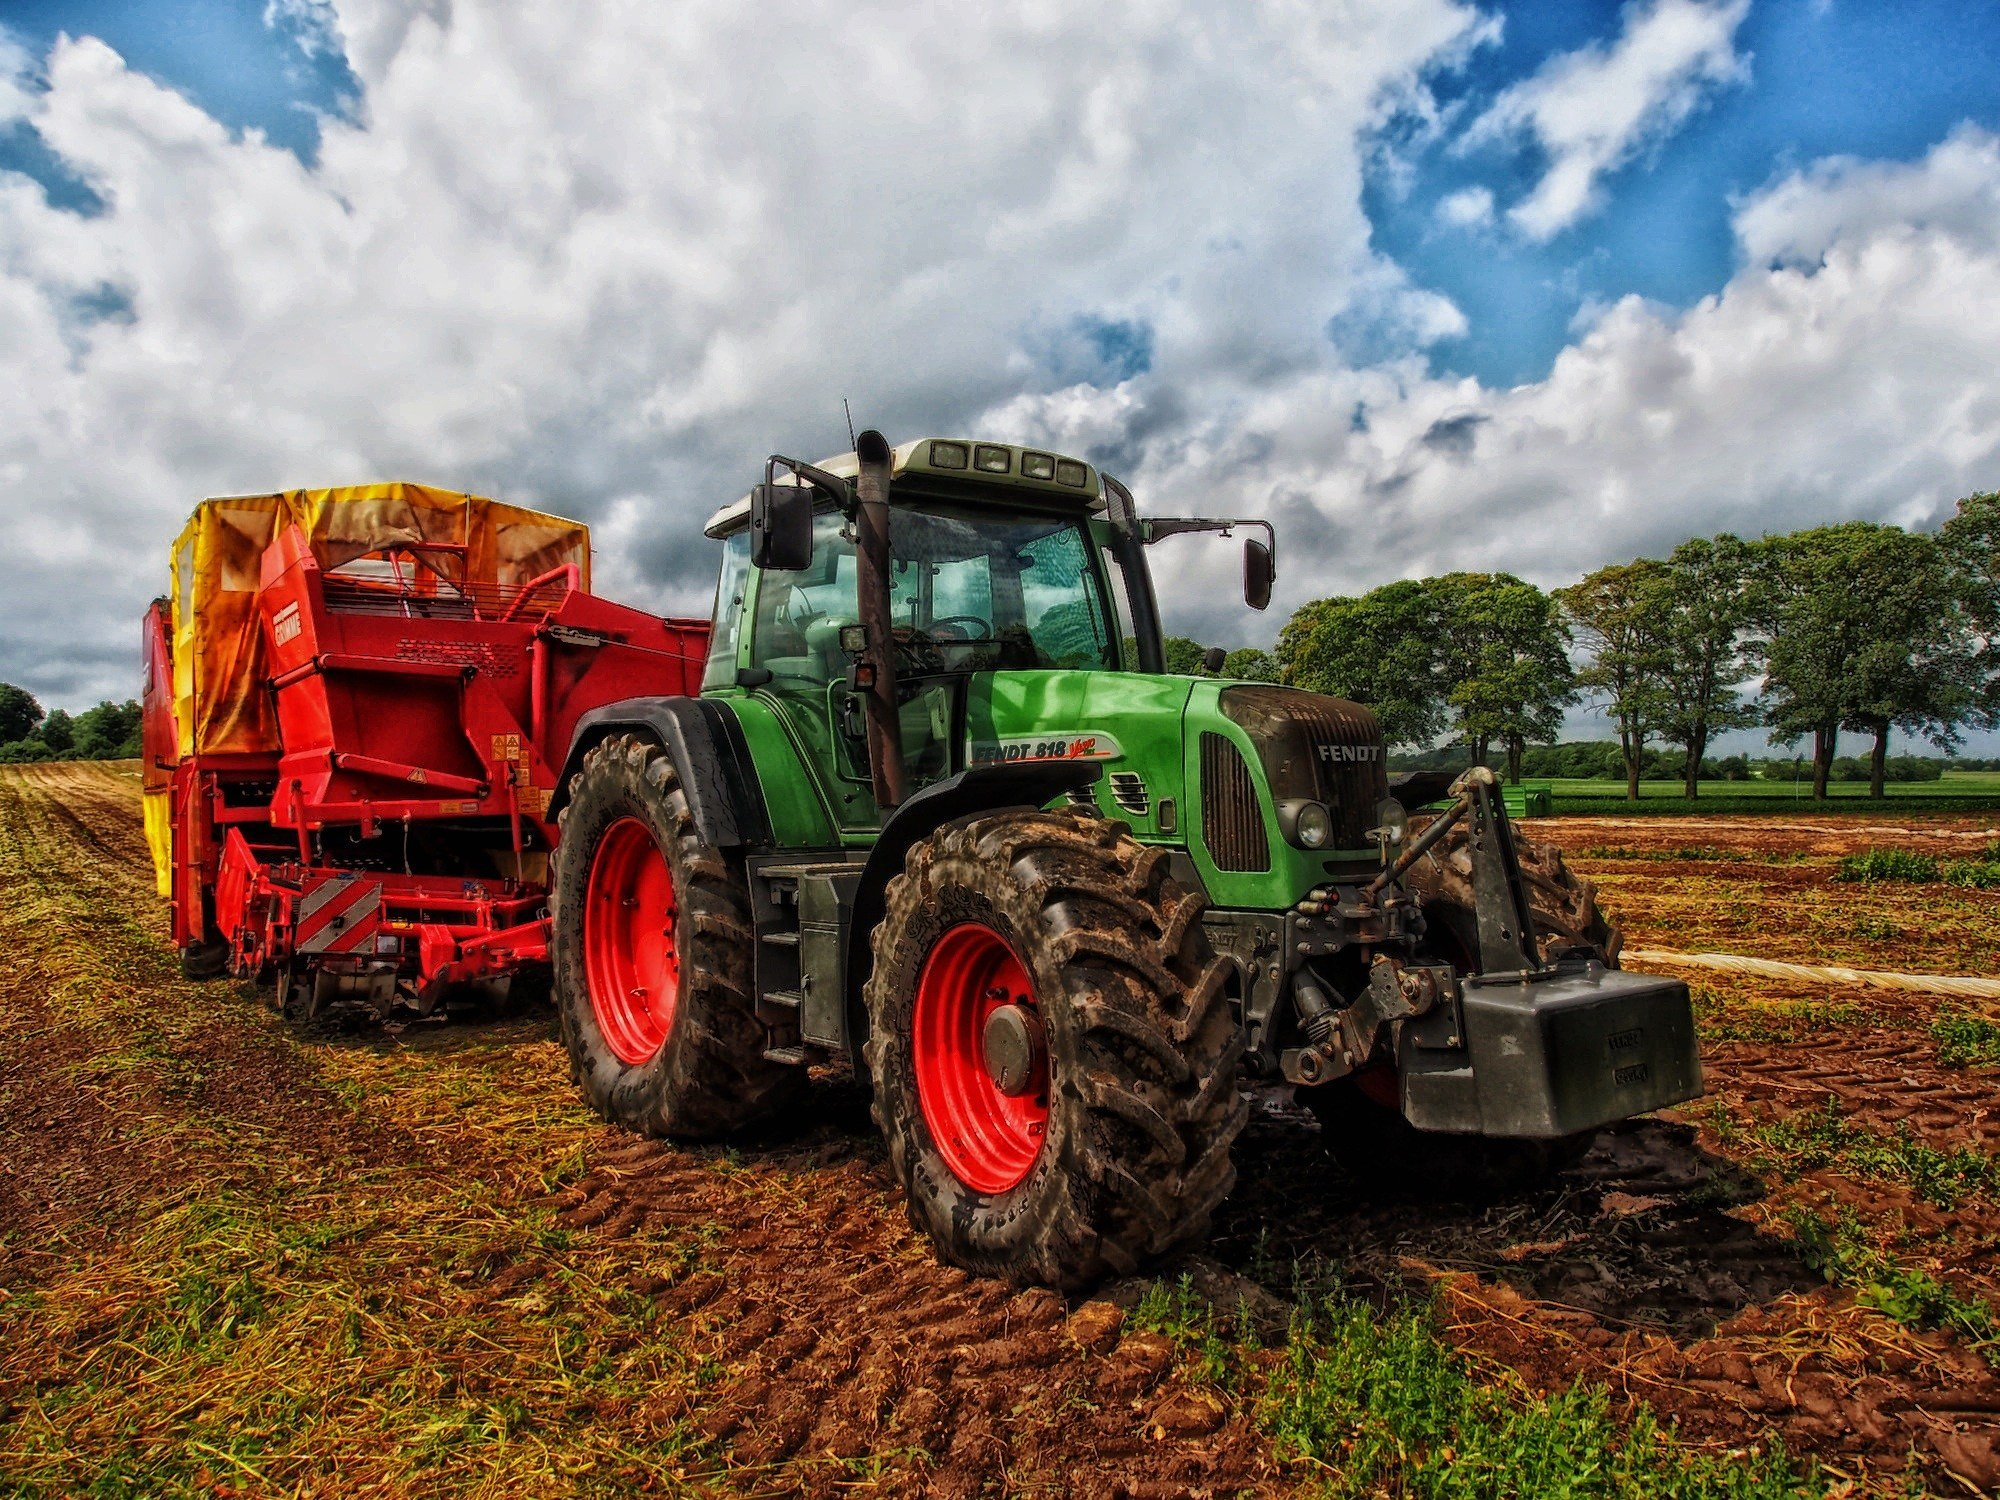 A tractor pulls farm equipment through a field beneath a partly cloudy blue sky. (Pixabay / tpsdave, public domain)